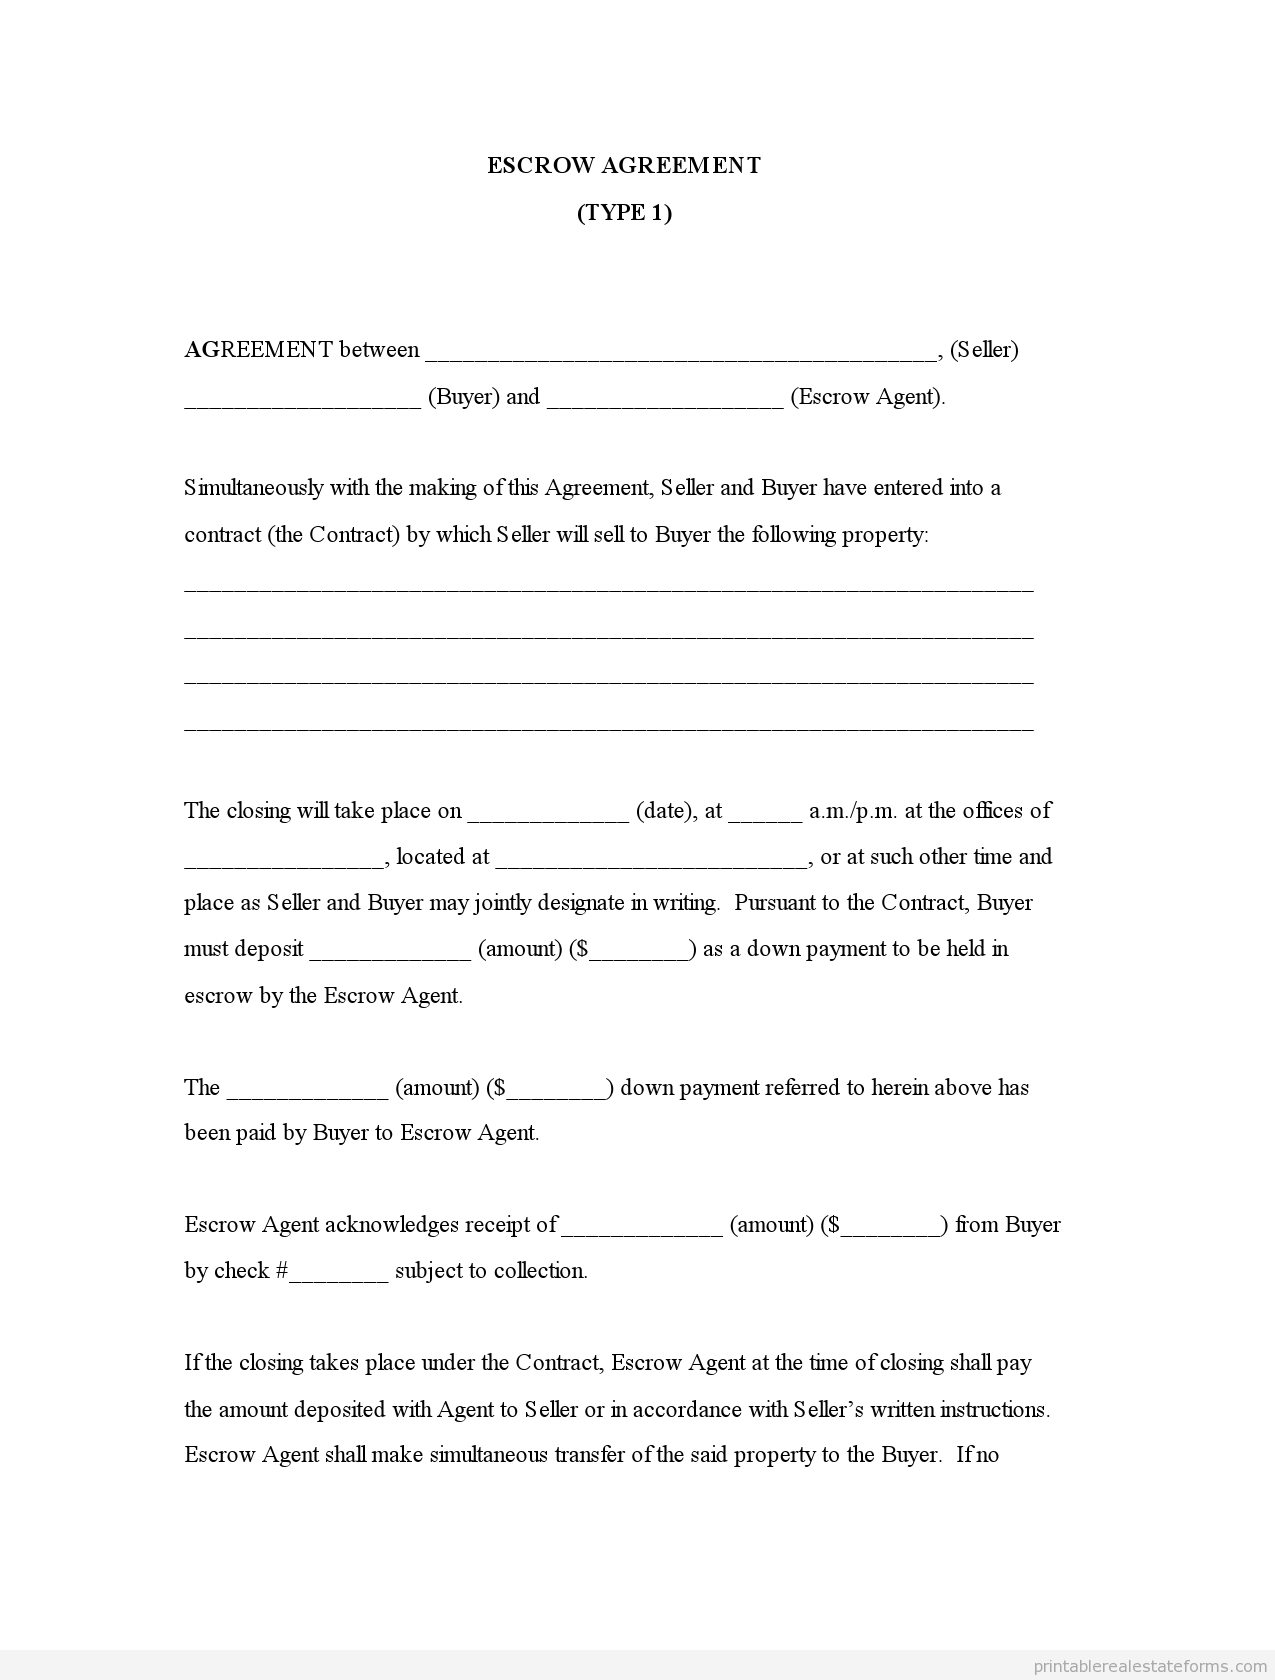 Sample Printable Escrow Agreement Type 1 Form Printable Real